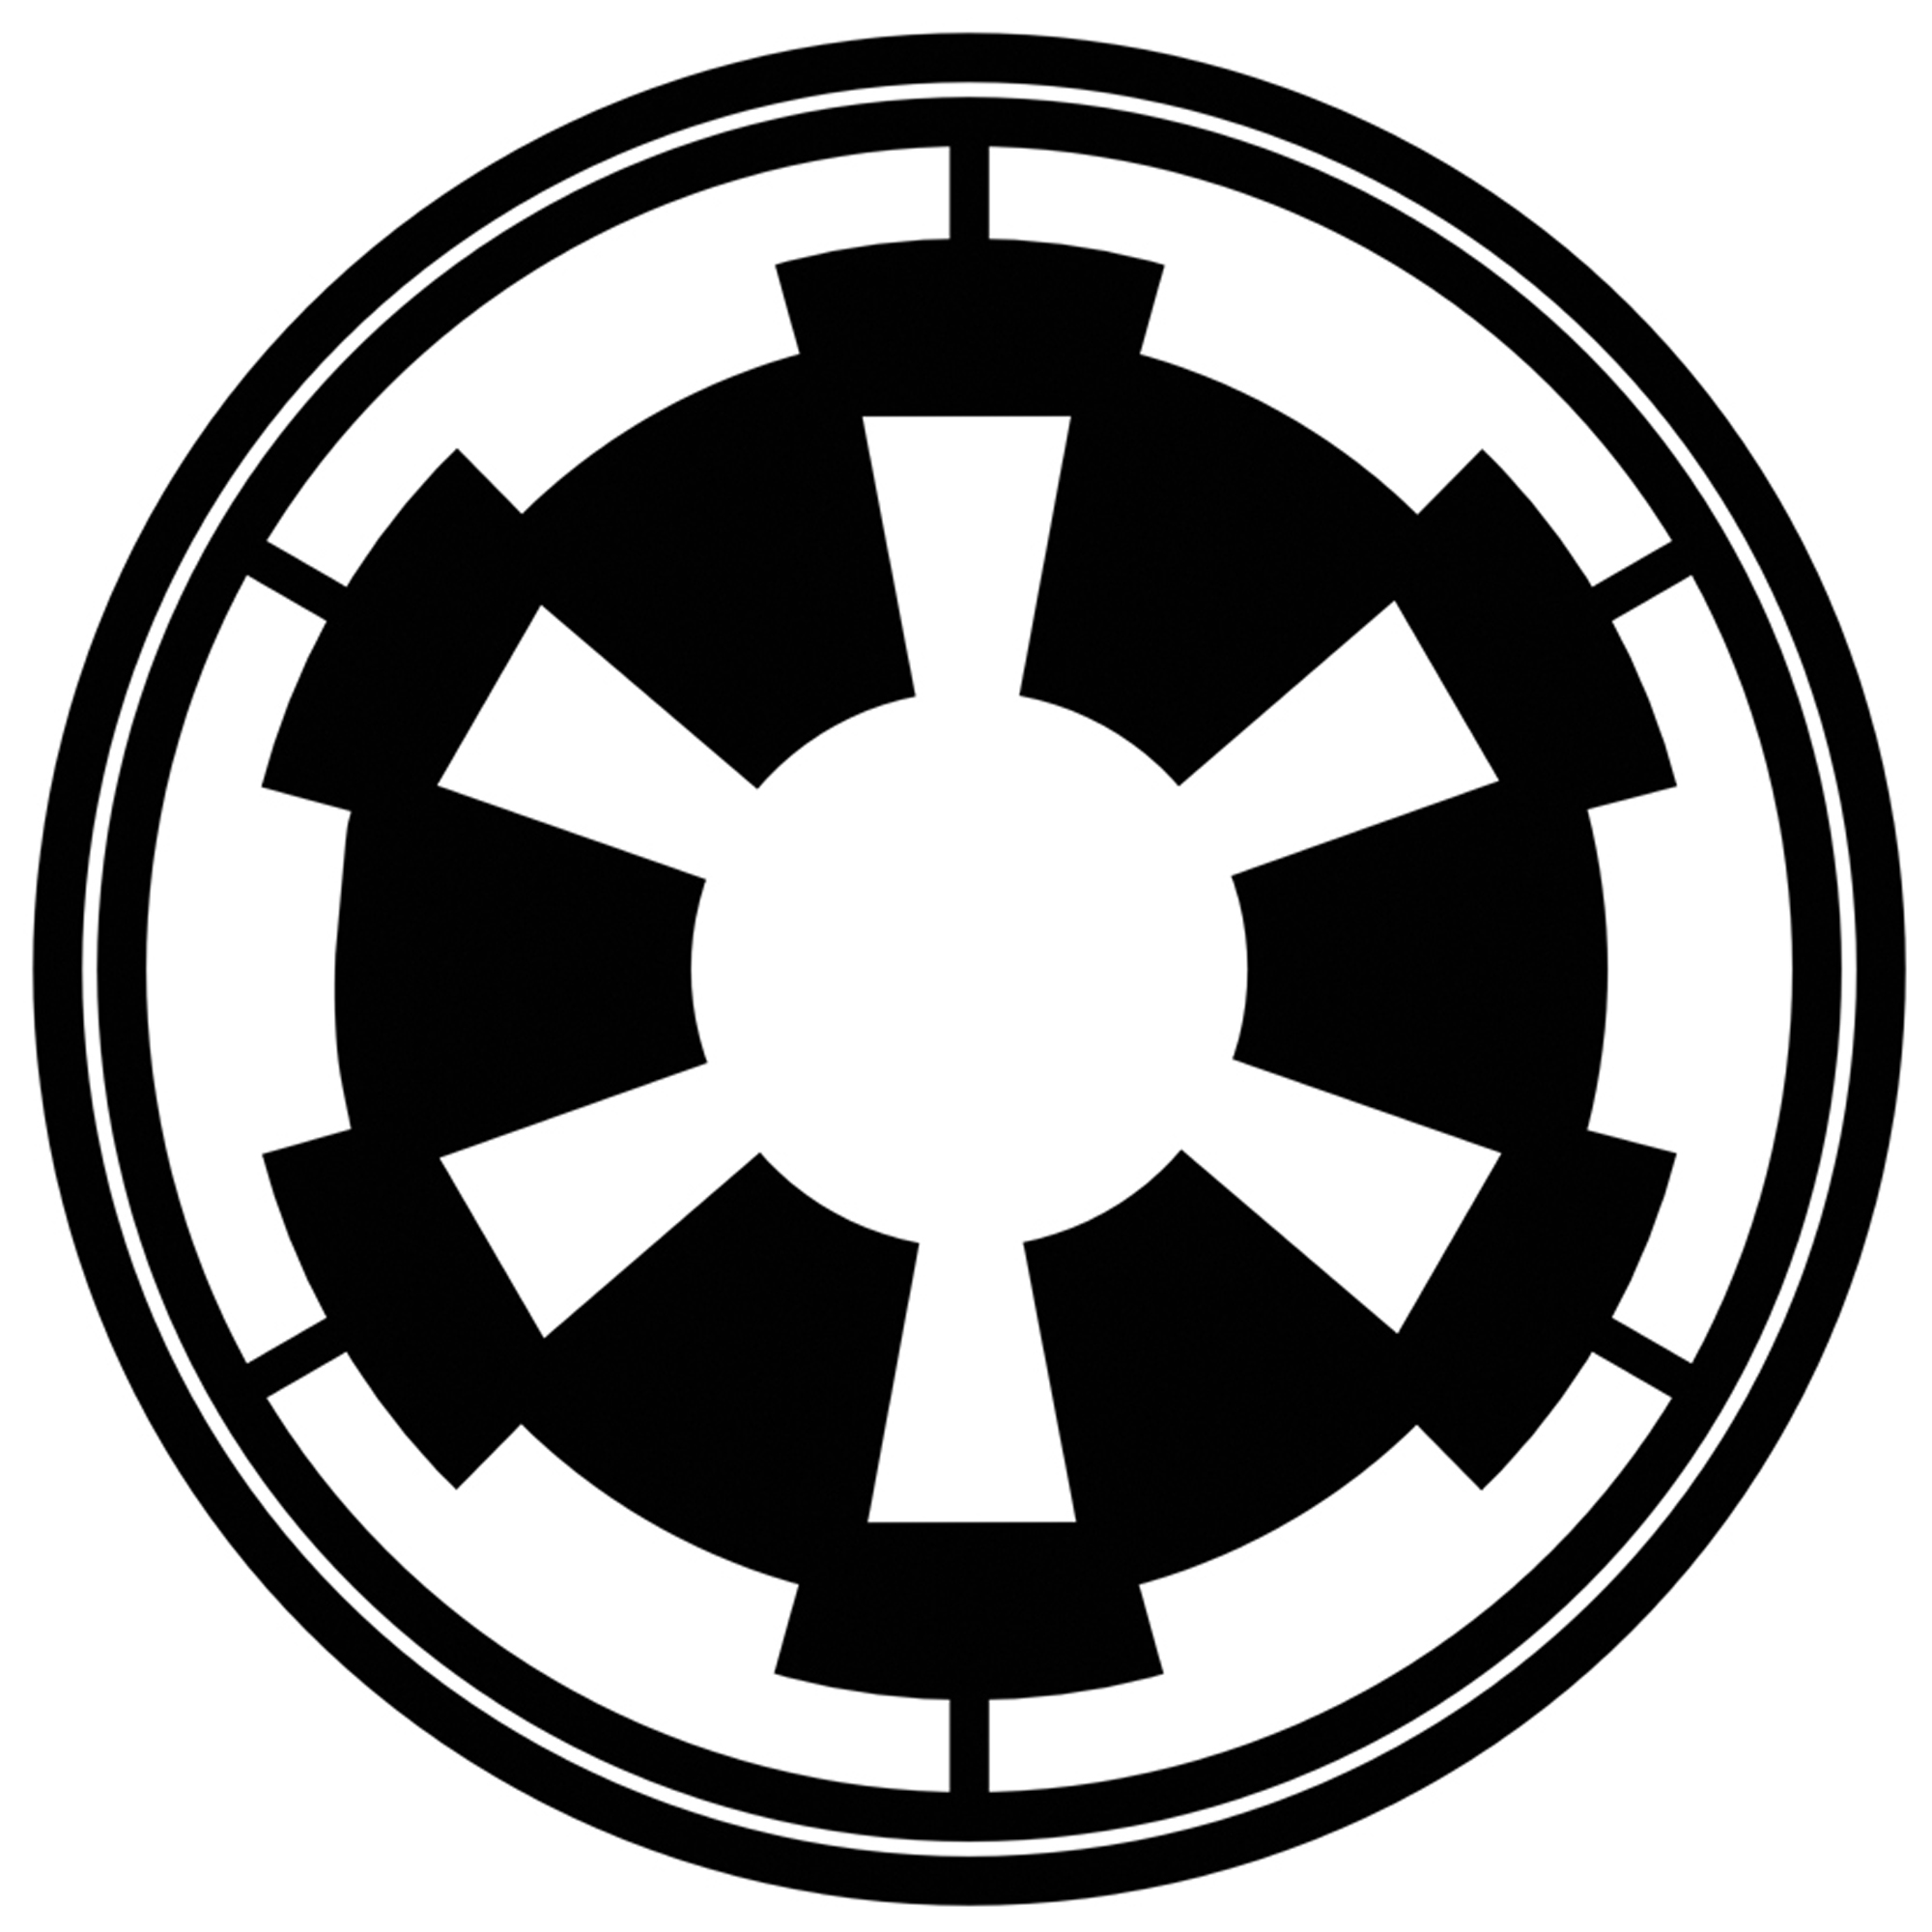 Empire clipart emblem star wars (Remnant) True Empire Wars Star